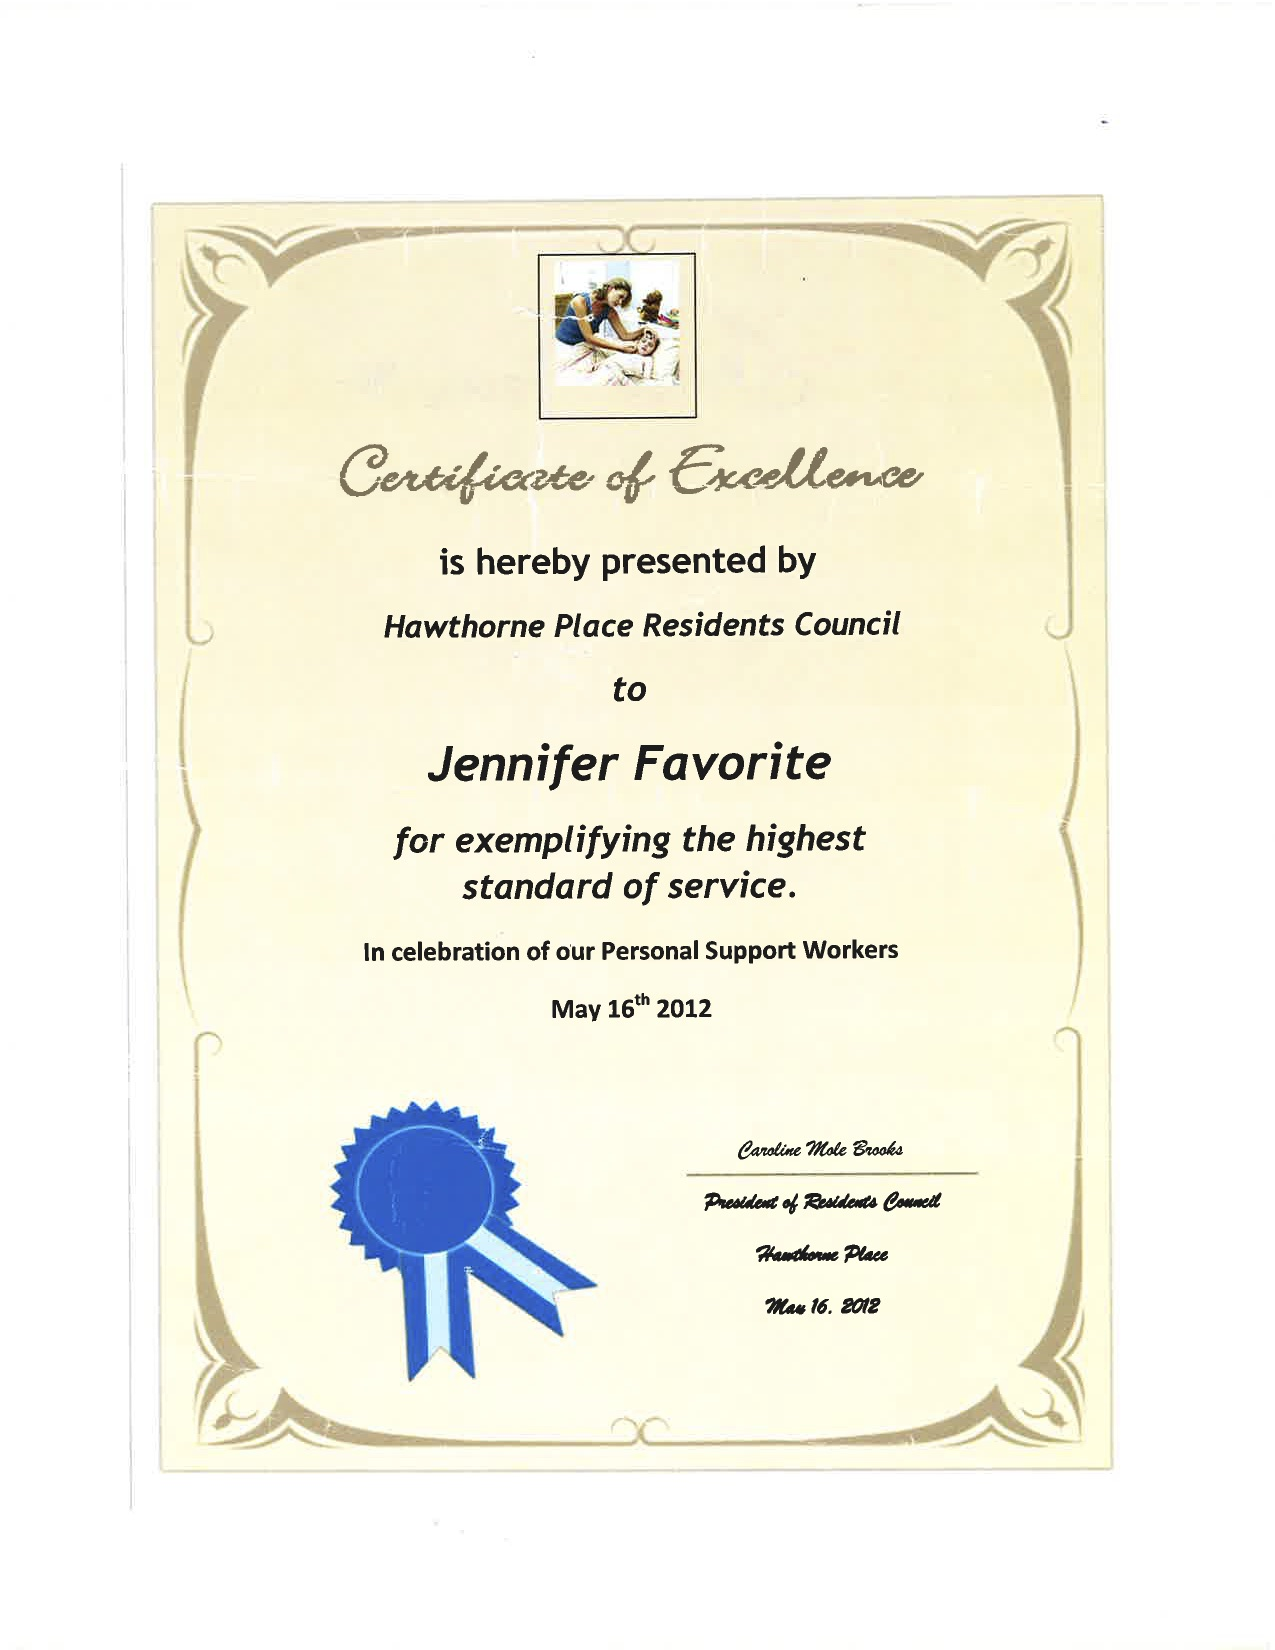 Certificate Of Excellence Hawthorne Place Residents Council